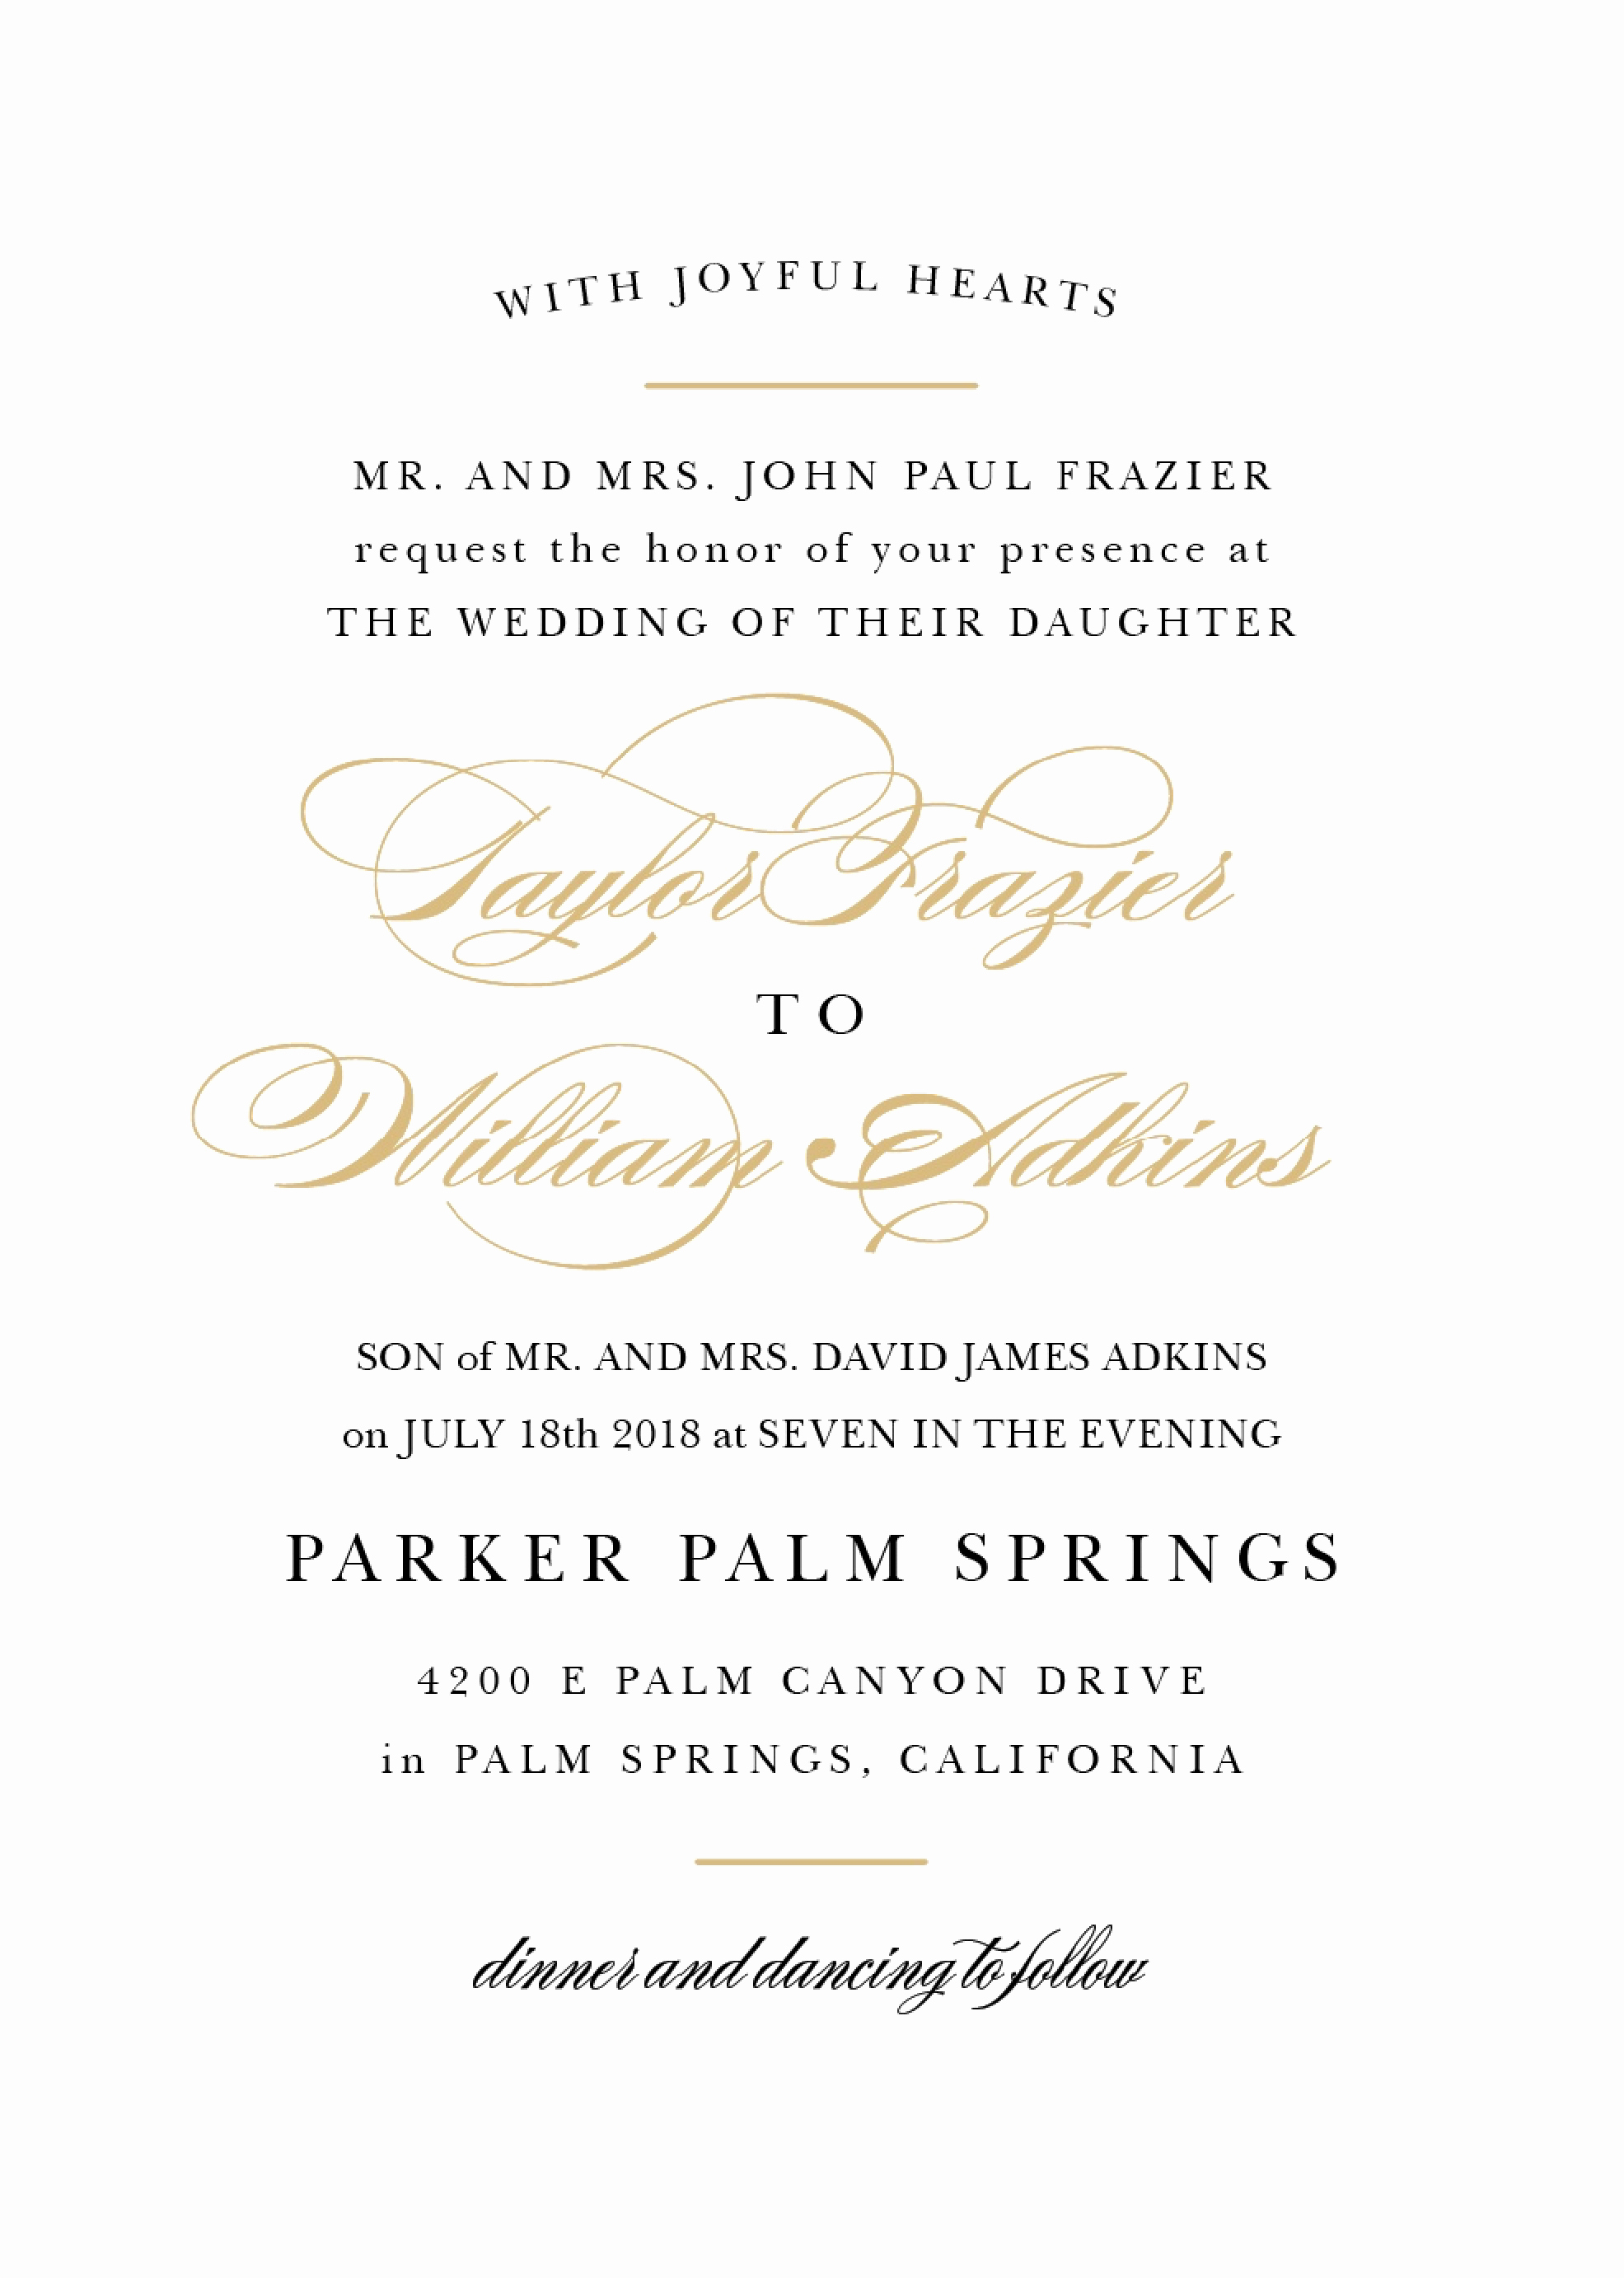 Second Marriage Invitation Wording Lovely Wedding Invitation Wording Samples